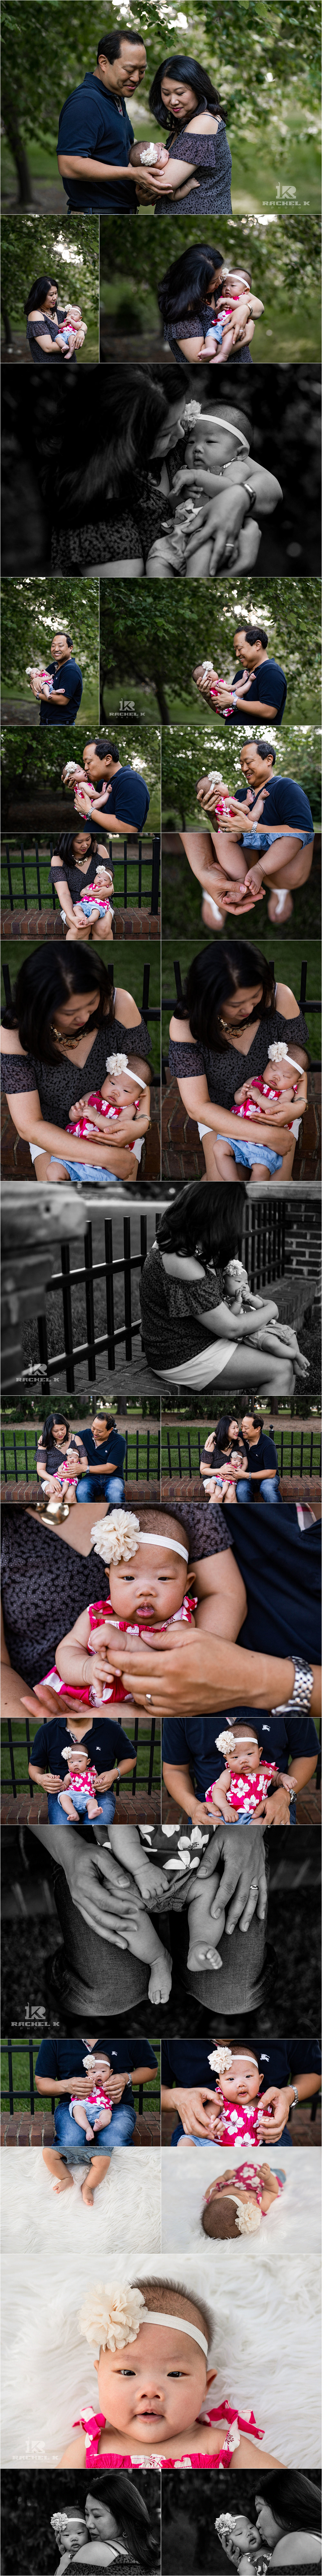 3 month old family neighborhood session in DC by Rachel K Photo